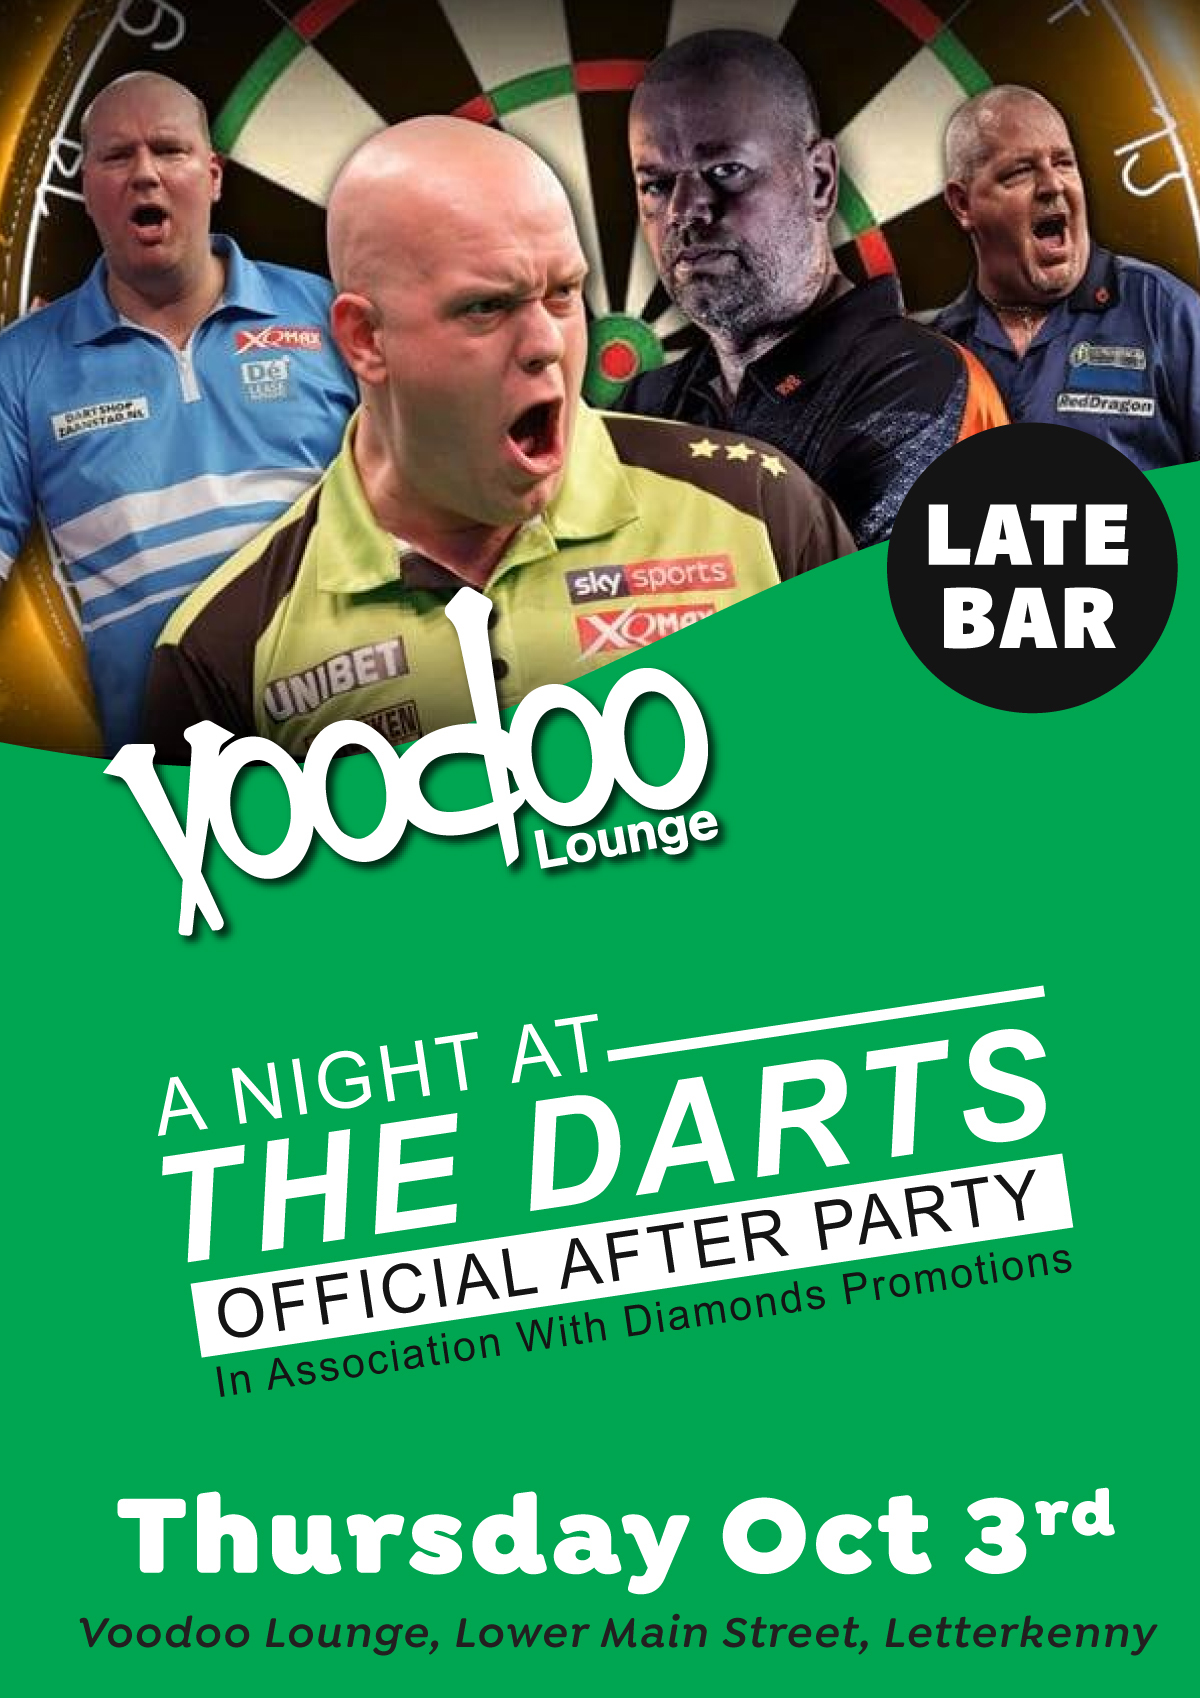 voodoo-venue---Thursday---official-darts-after-party-oct-3-2019.jpg